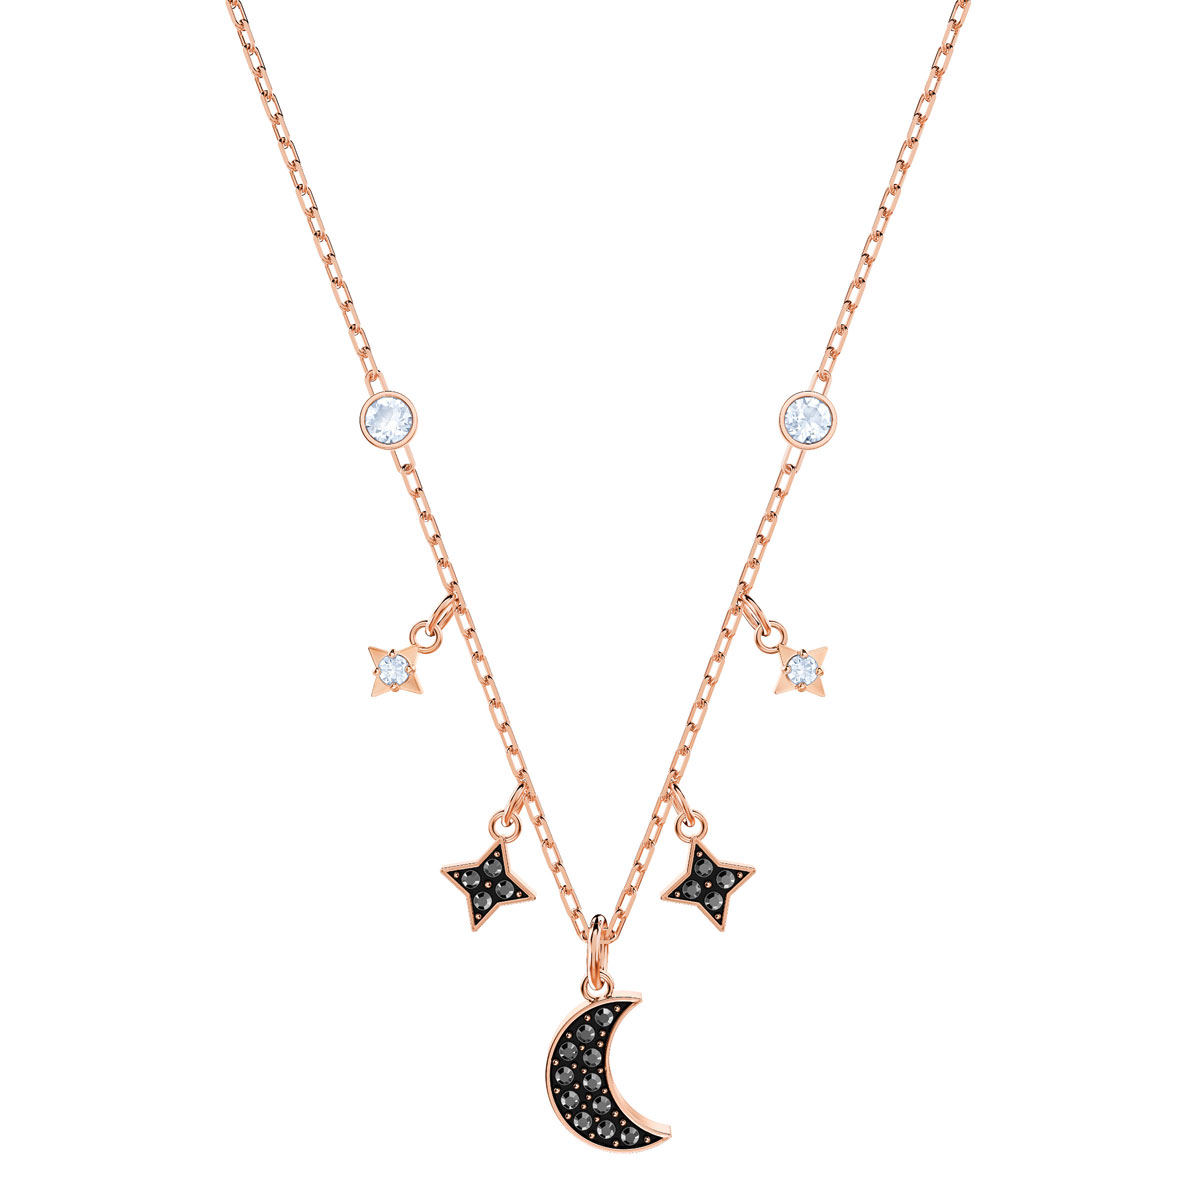 Swarovski Black Crystal and Rose Gold Symbolic Moon Necklace